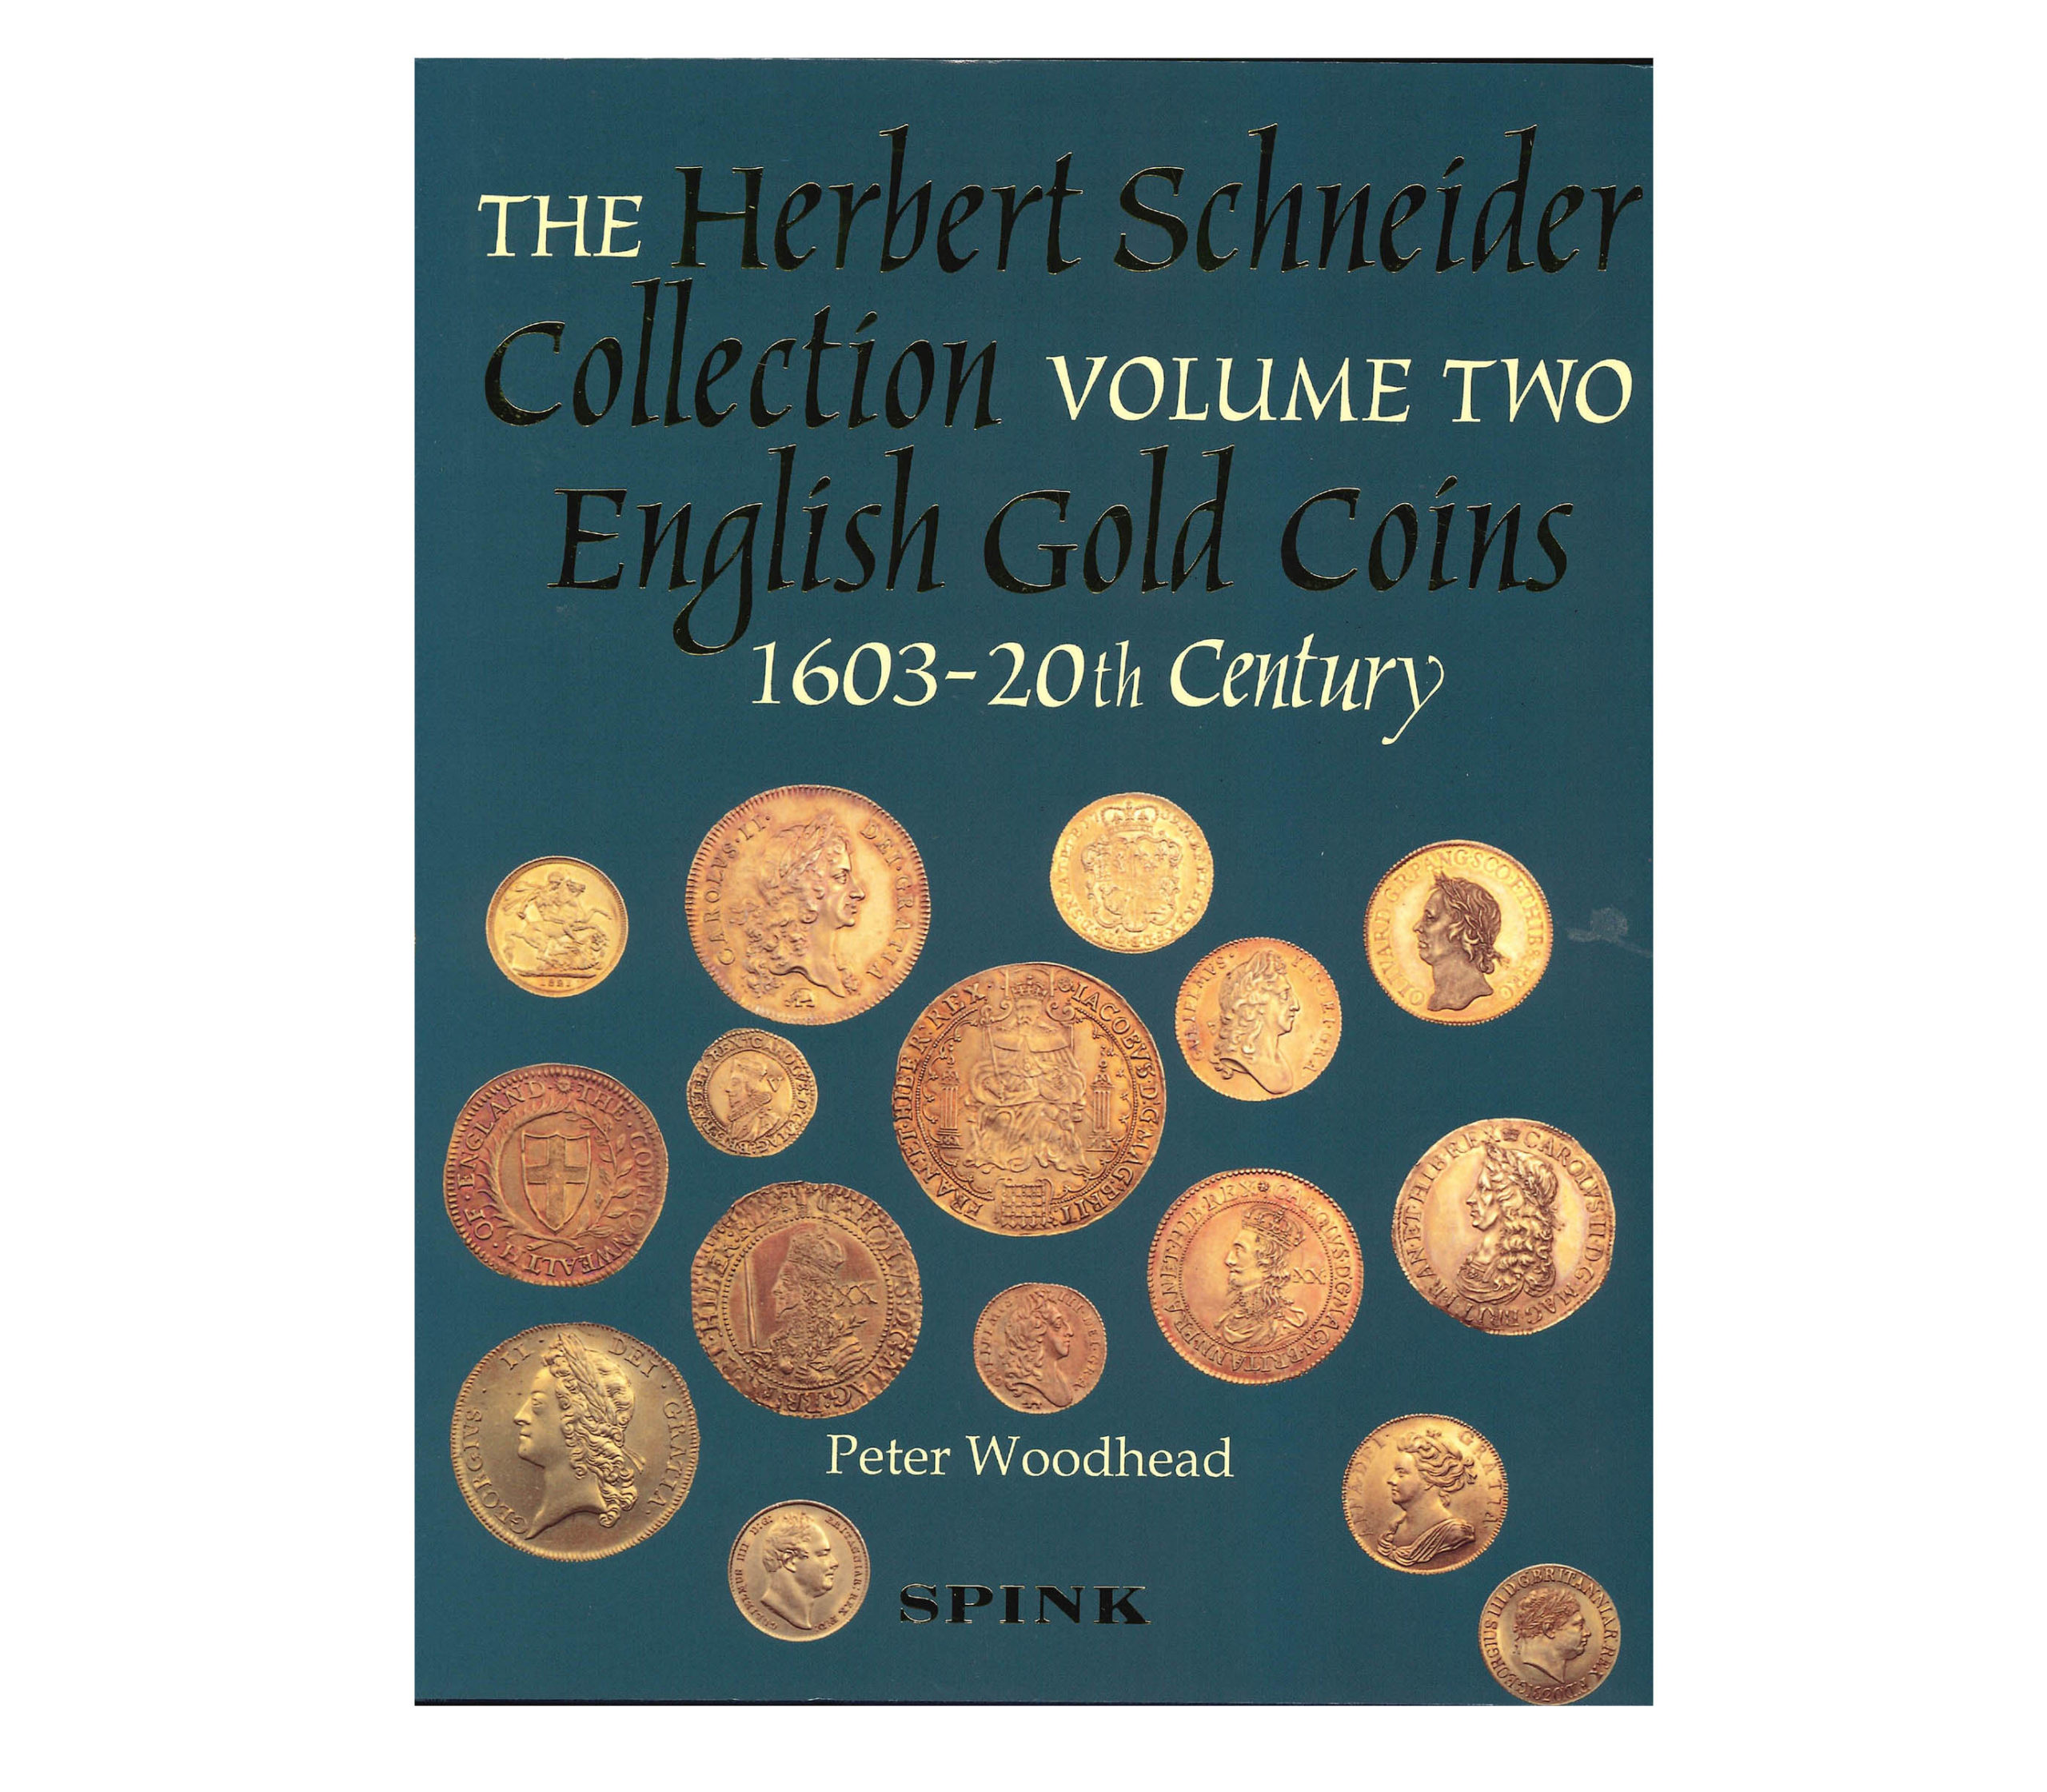 The Herbert Schneider Collection. Volume Two - English Gold Coins, 1603 - 20th century